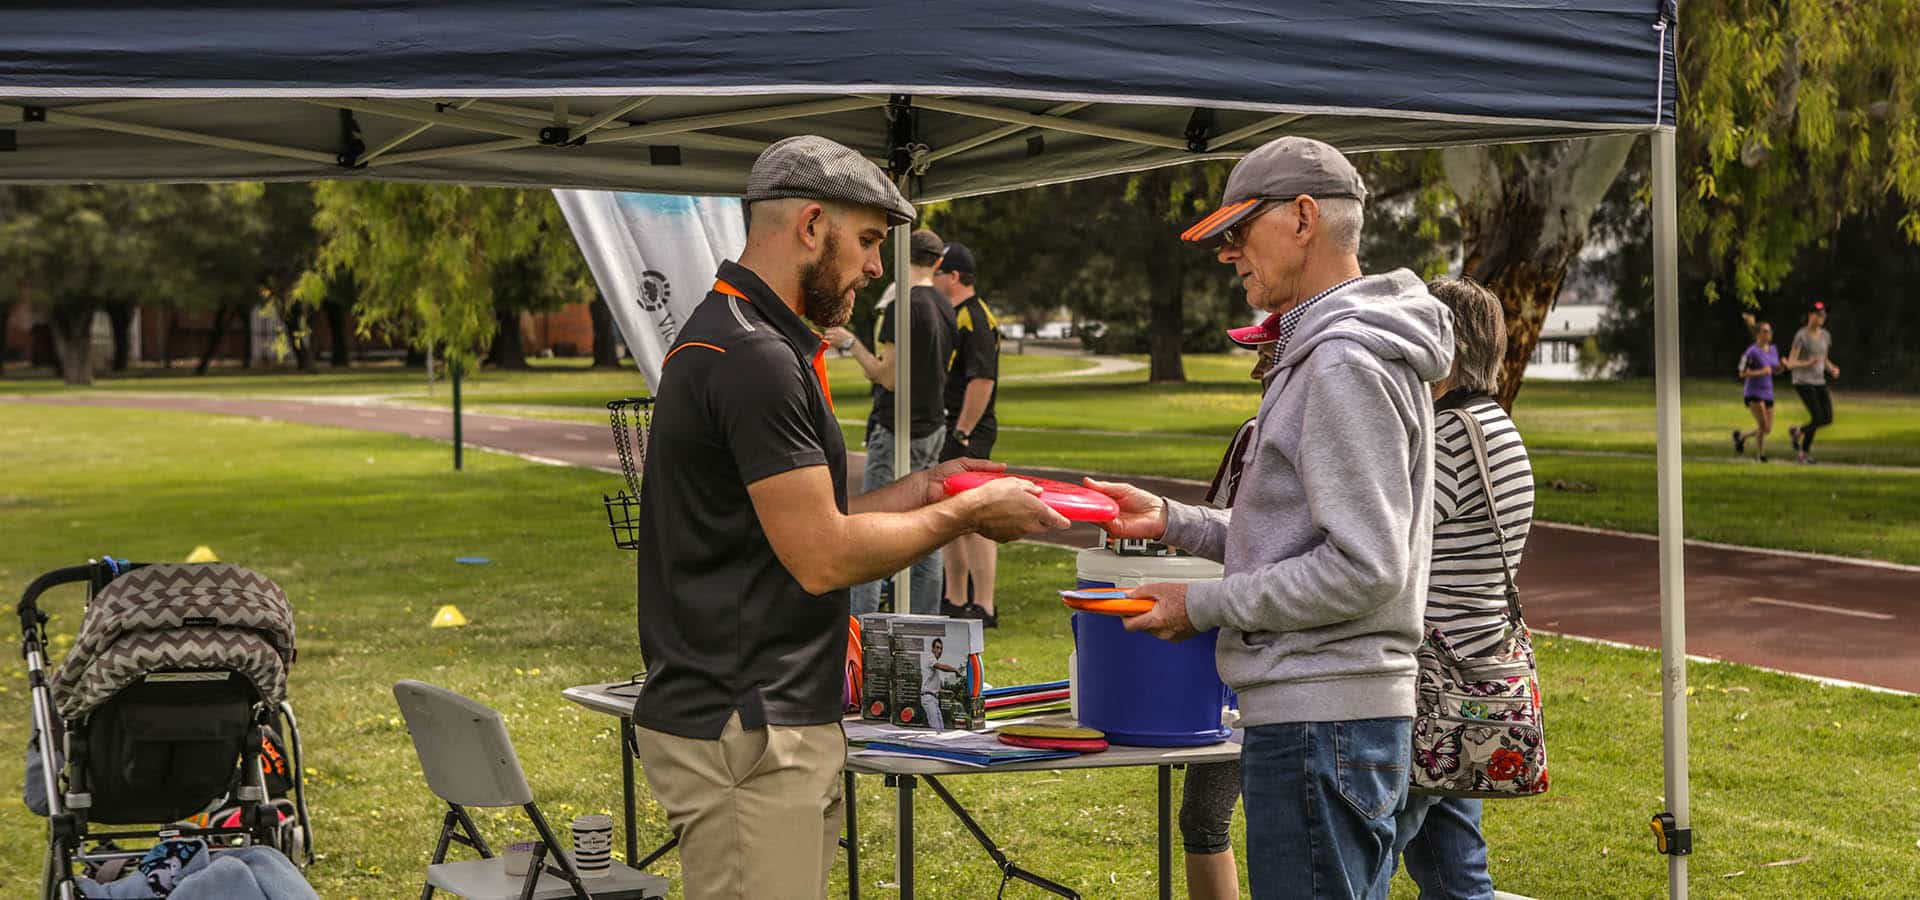 An image showing man people buying disc golf frisbee and two people running